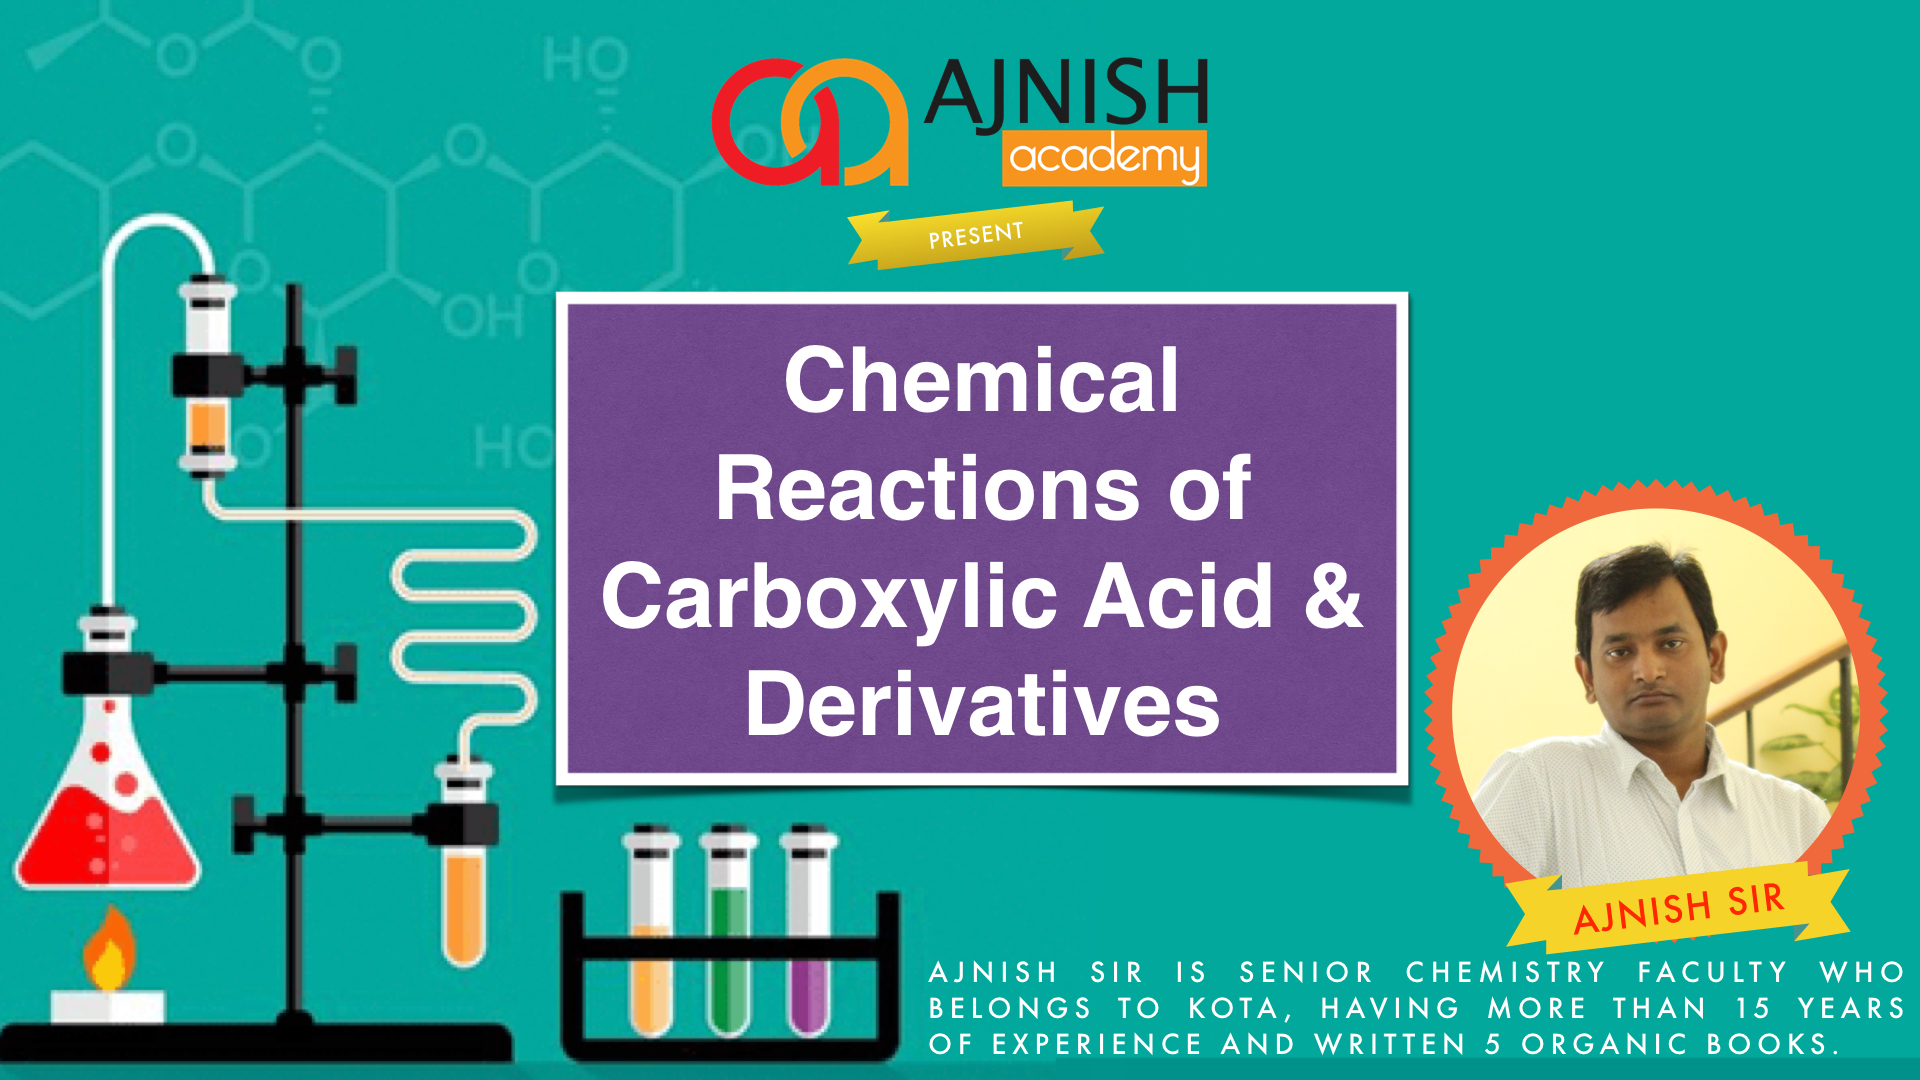 Carboxylic Acid & their derivatives